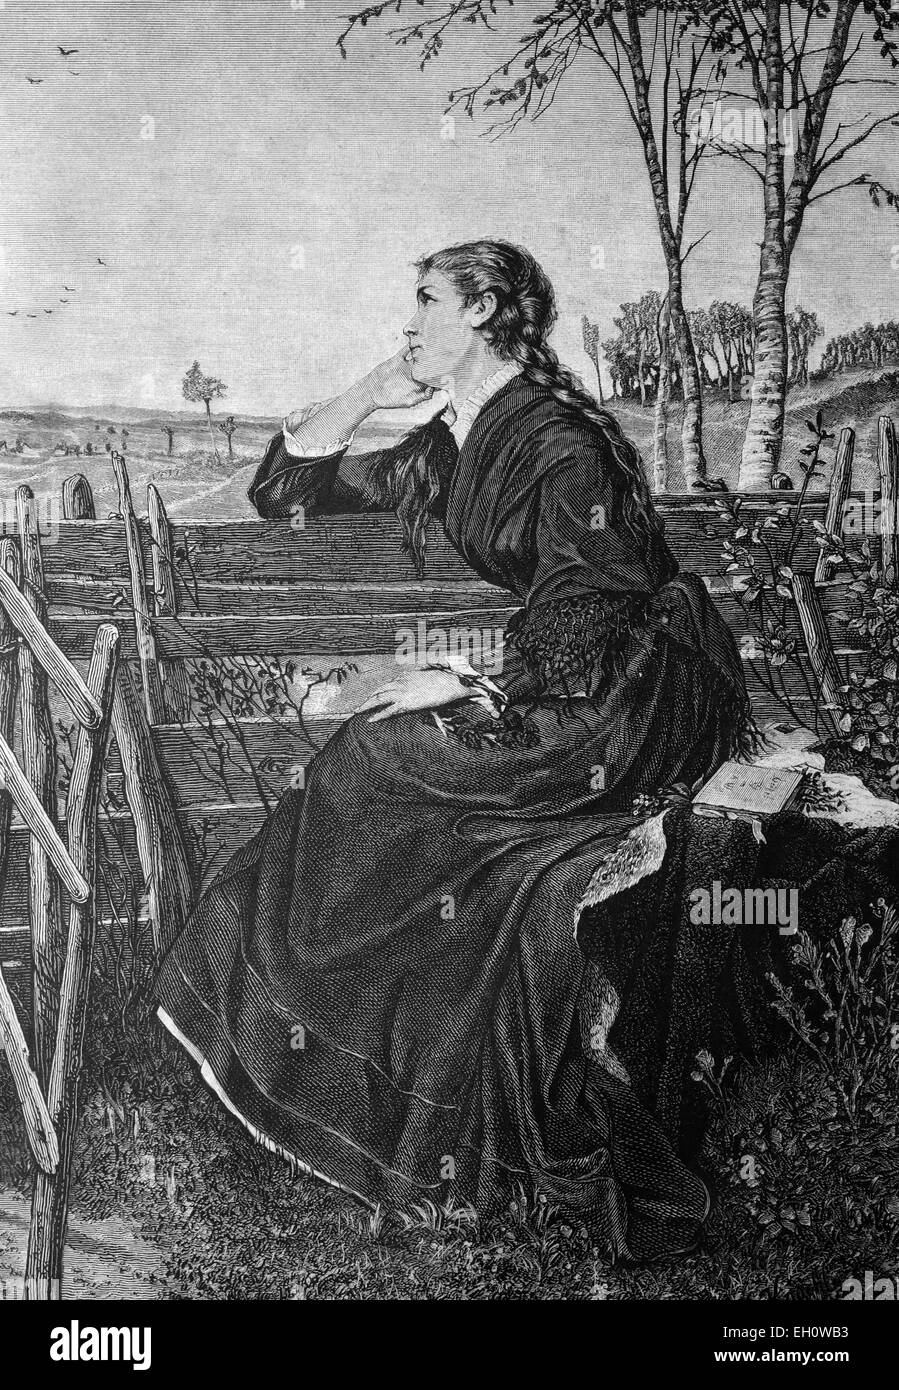 Pensive woman, historical illustration, about 1886 - Stock Image